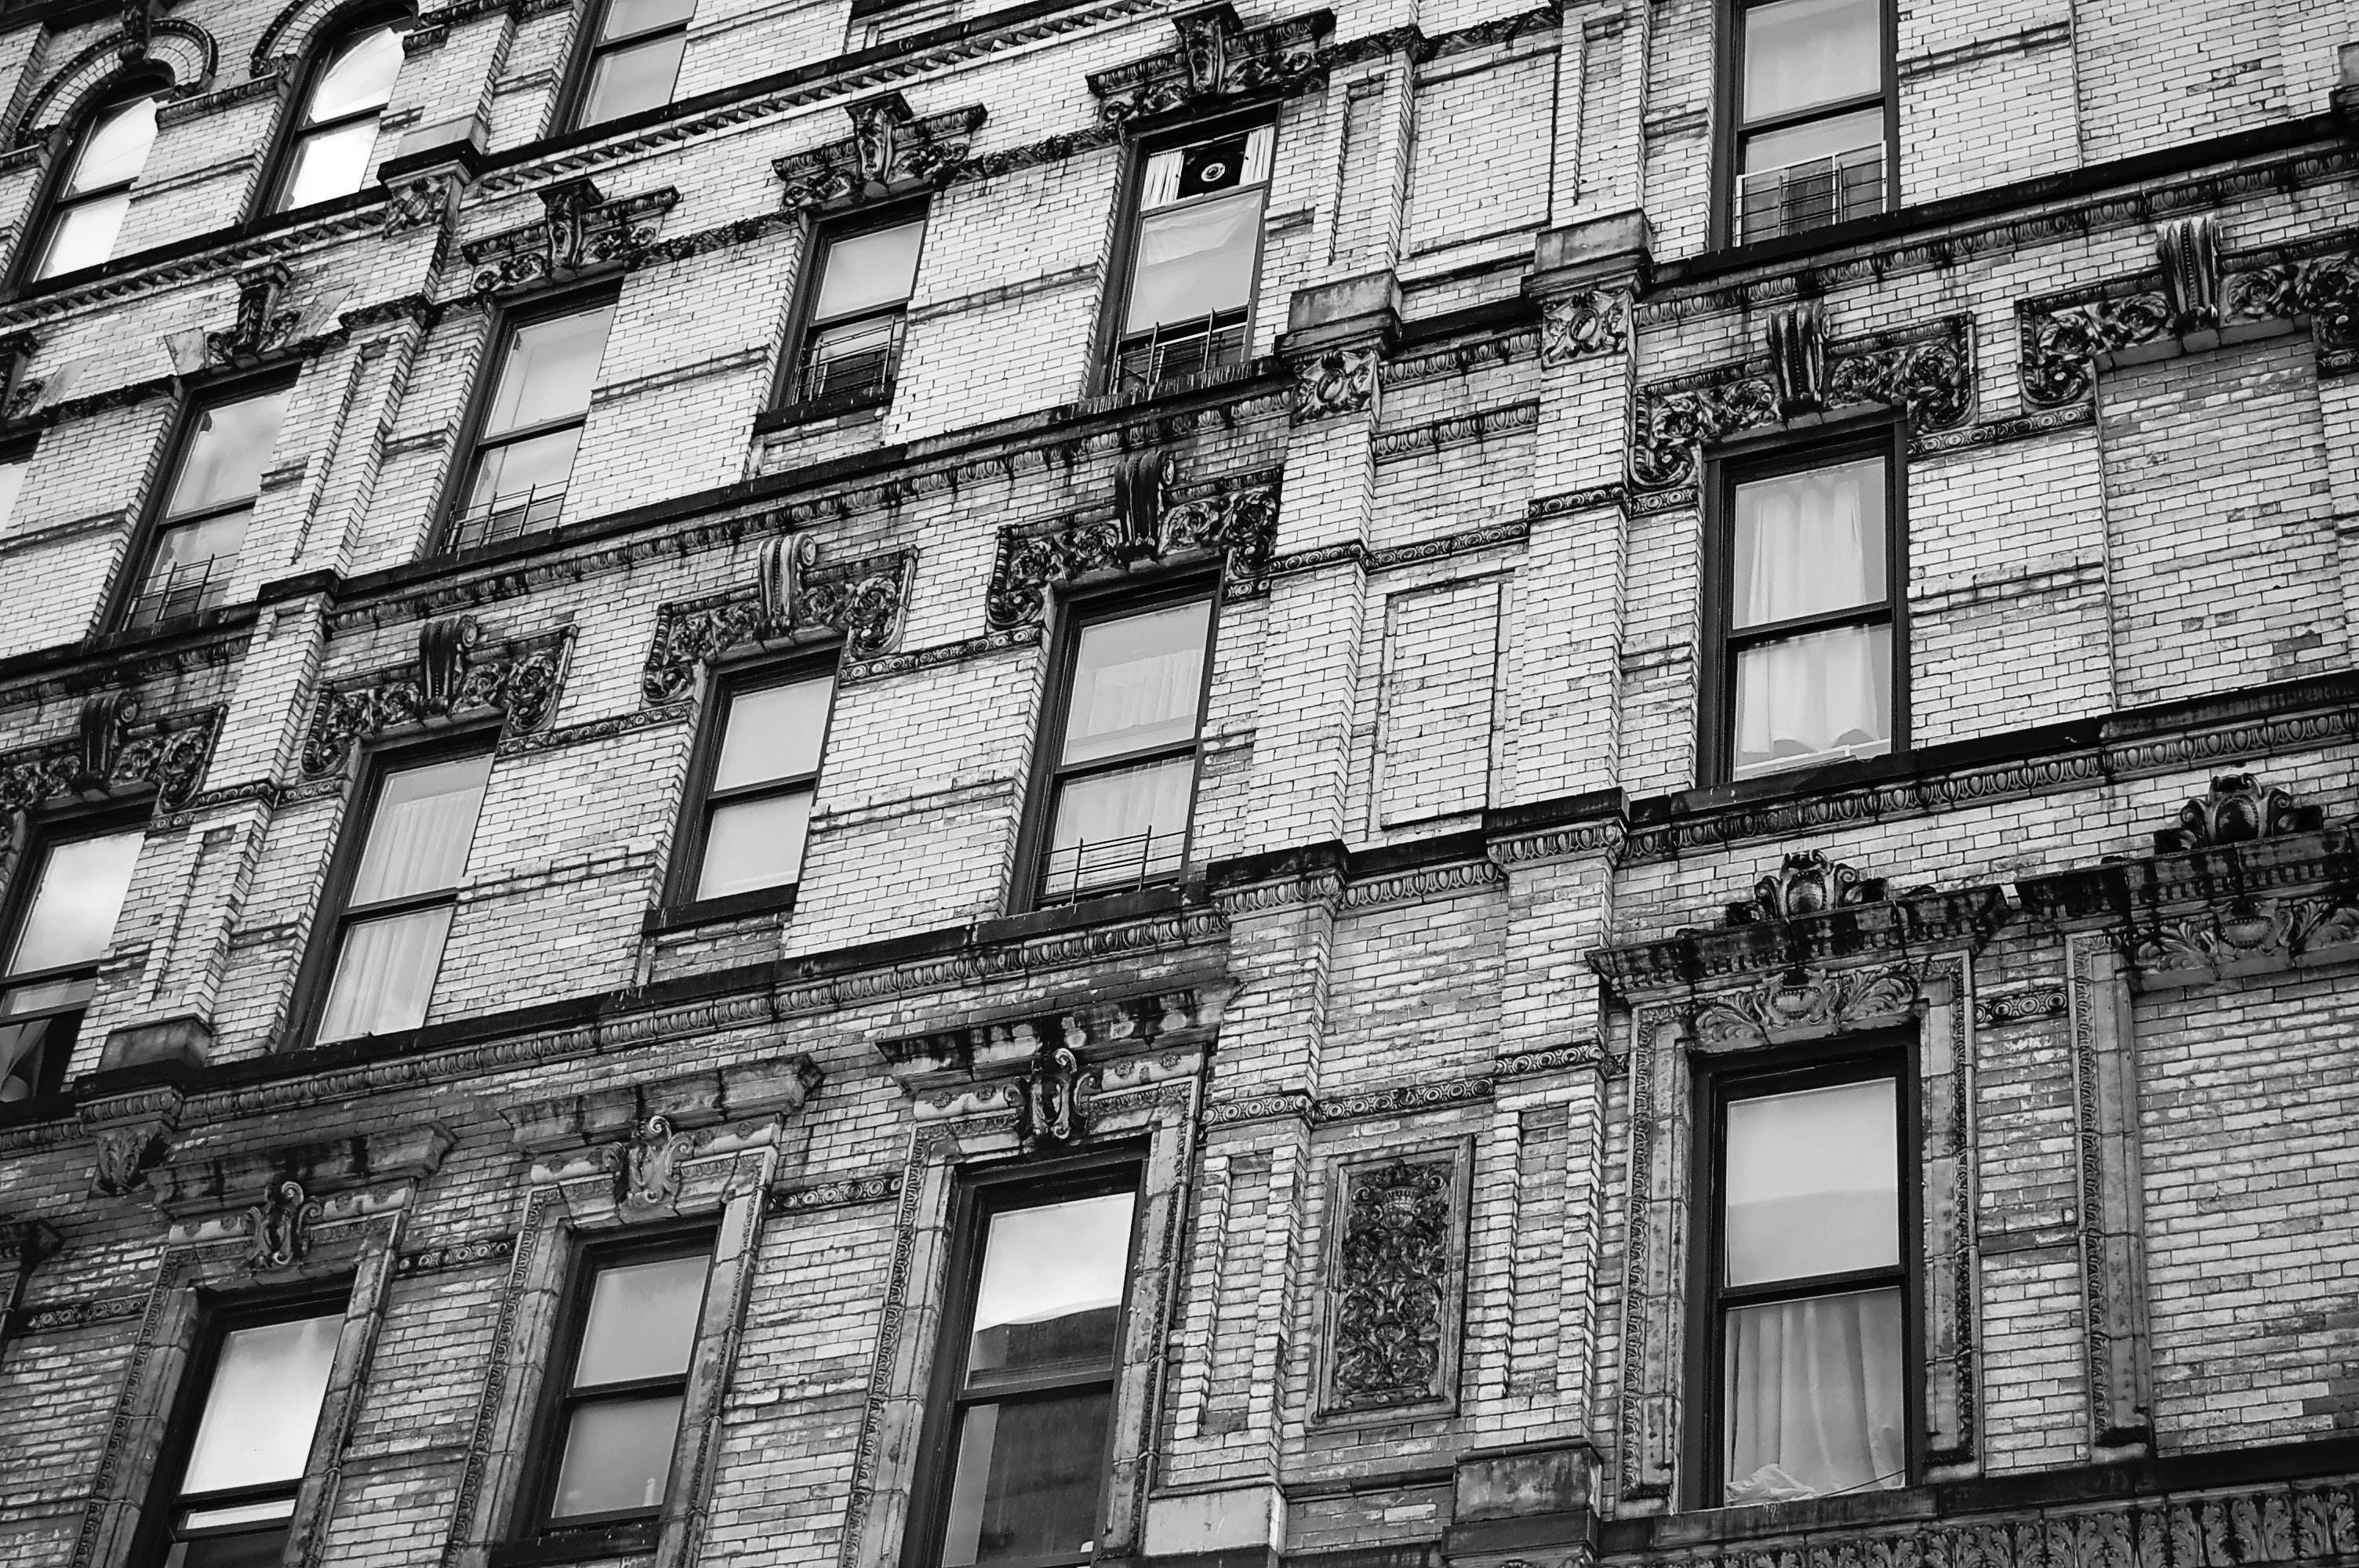 Gray scale photo of multi-storey building